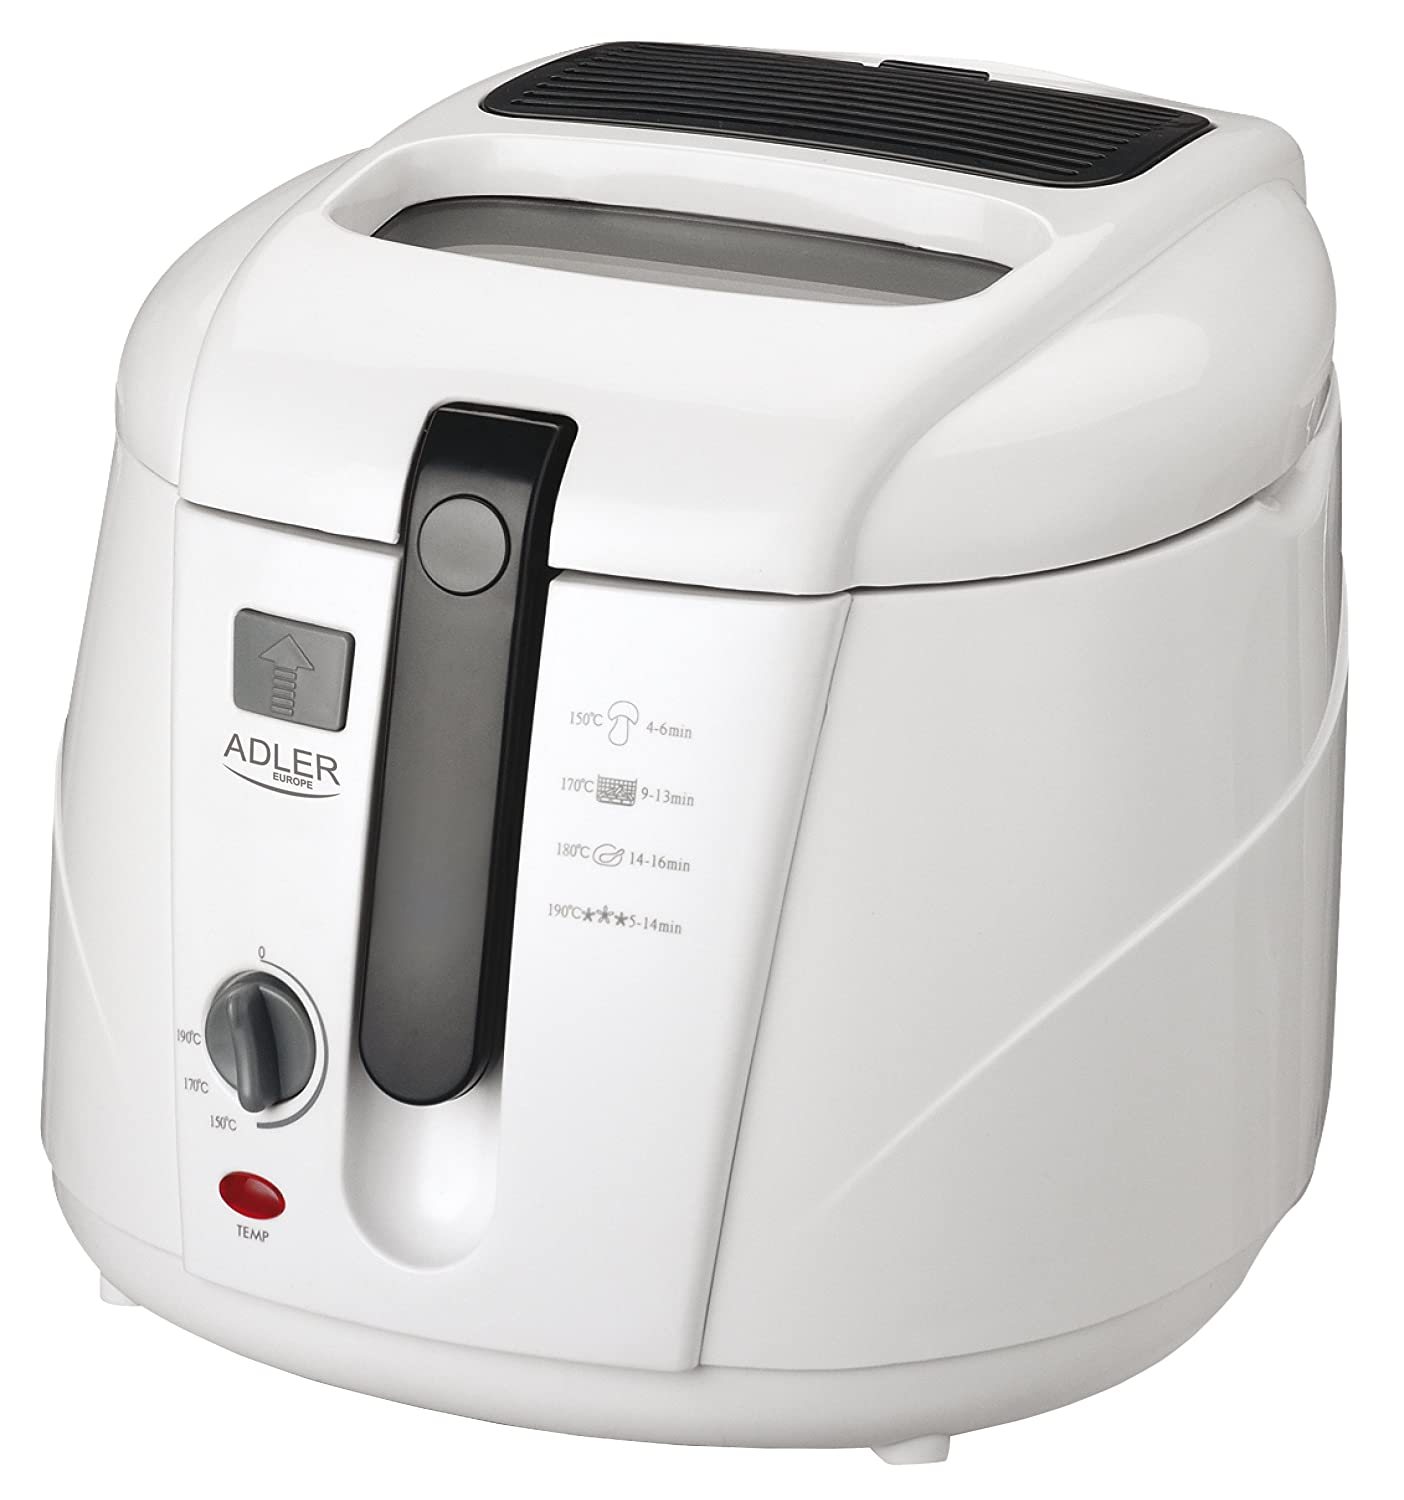 Adler AD 4906 Solo Independiente 2.5L 1800W Color blanco - Freidora (Solo, Independiente, Color blanco, Giratorio): Amazon.es: Hogar